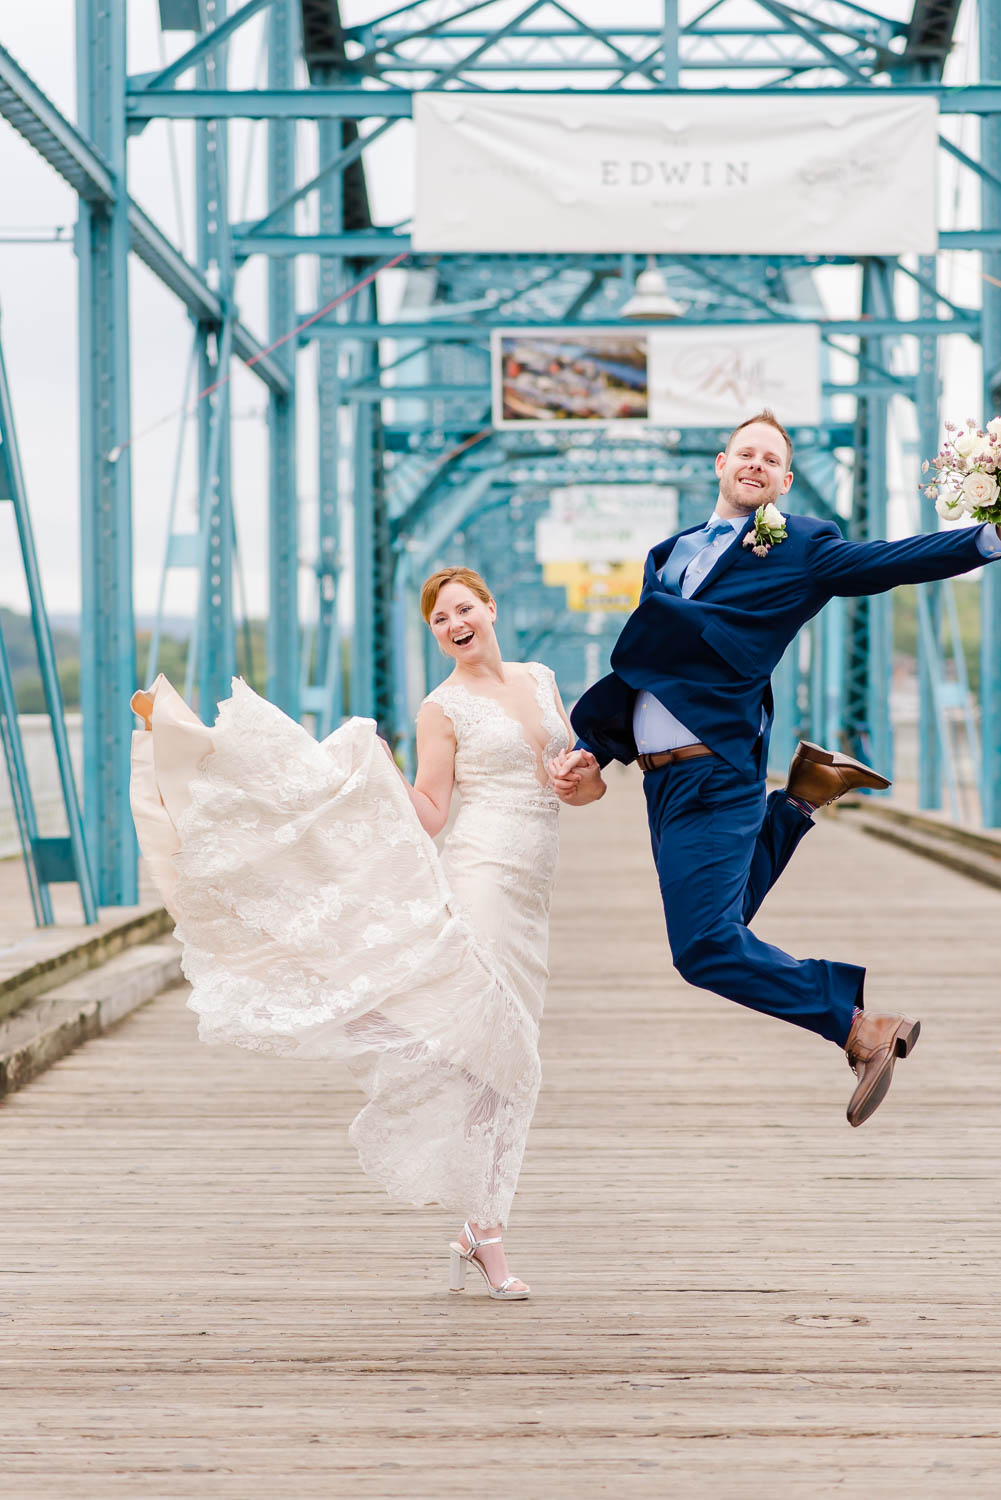 two people jumping wearing wedding clothes on the bluewalnut street bridge